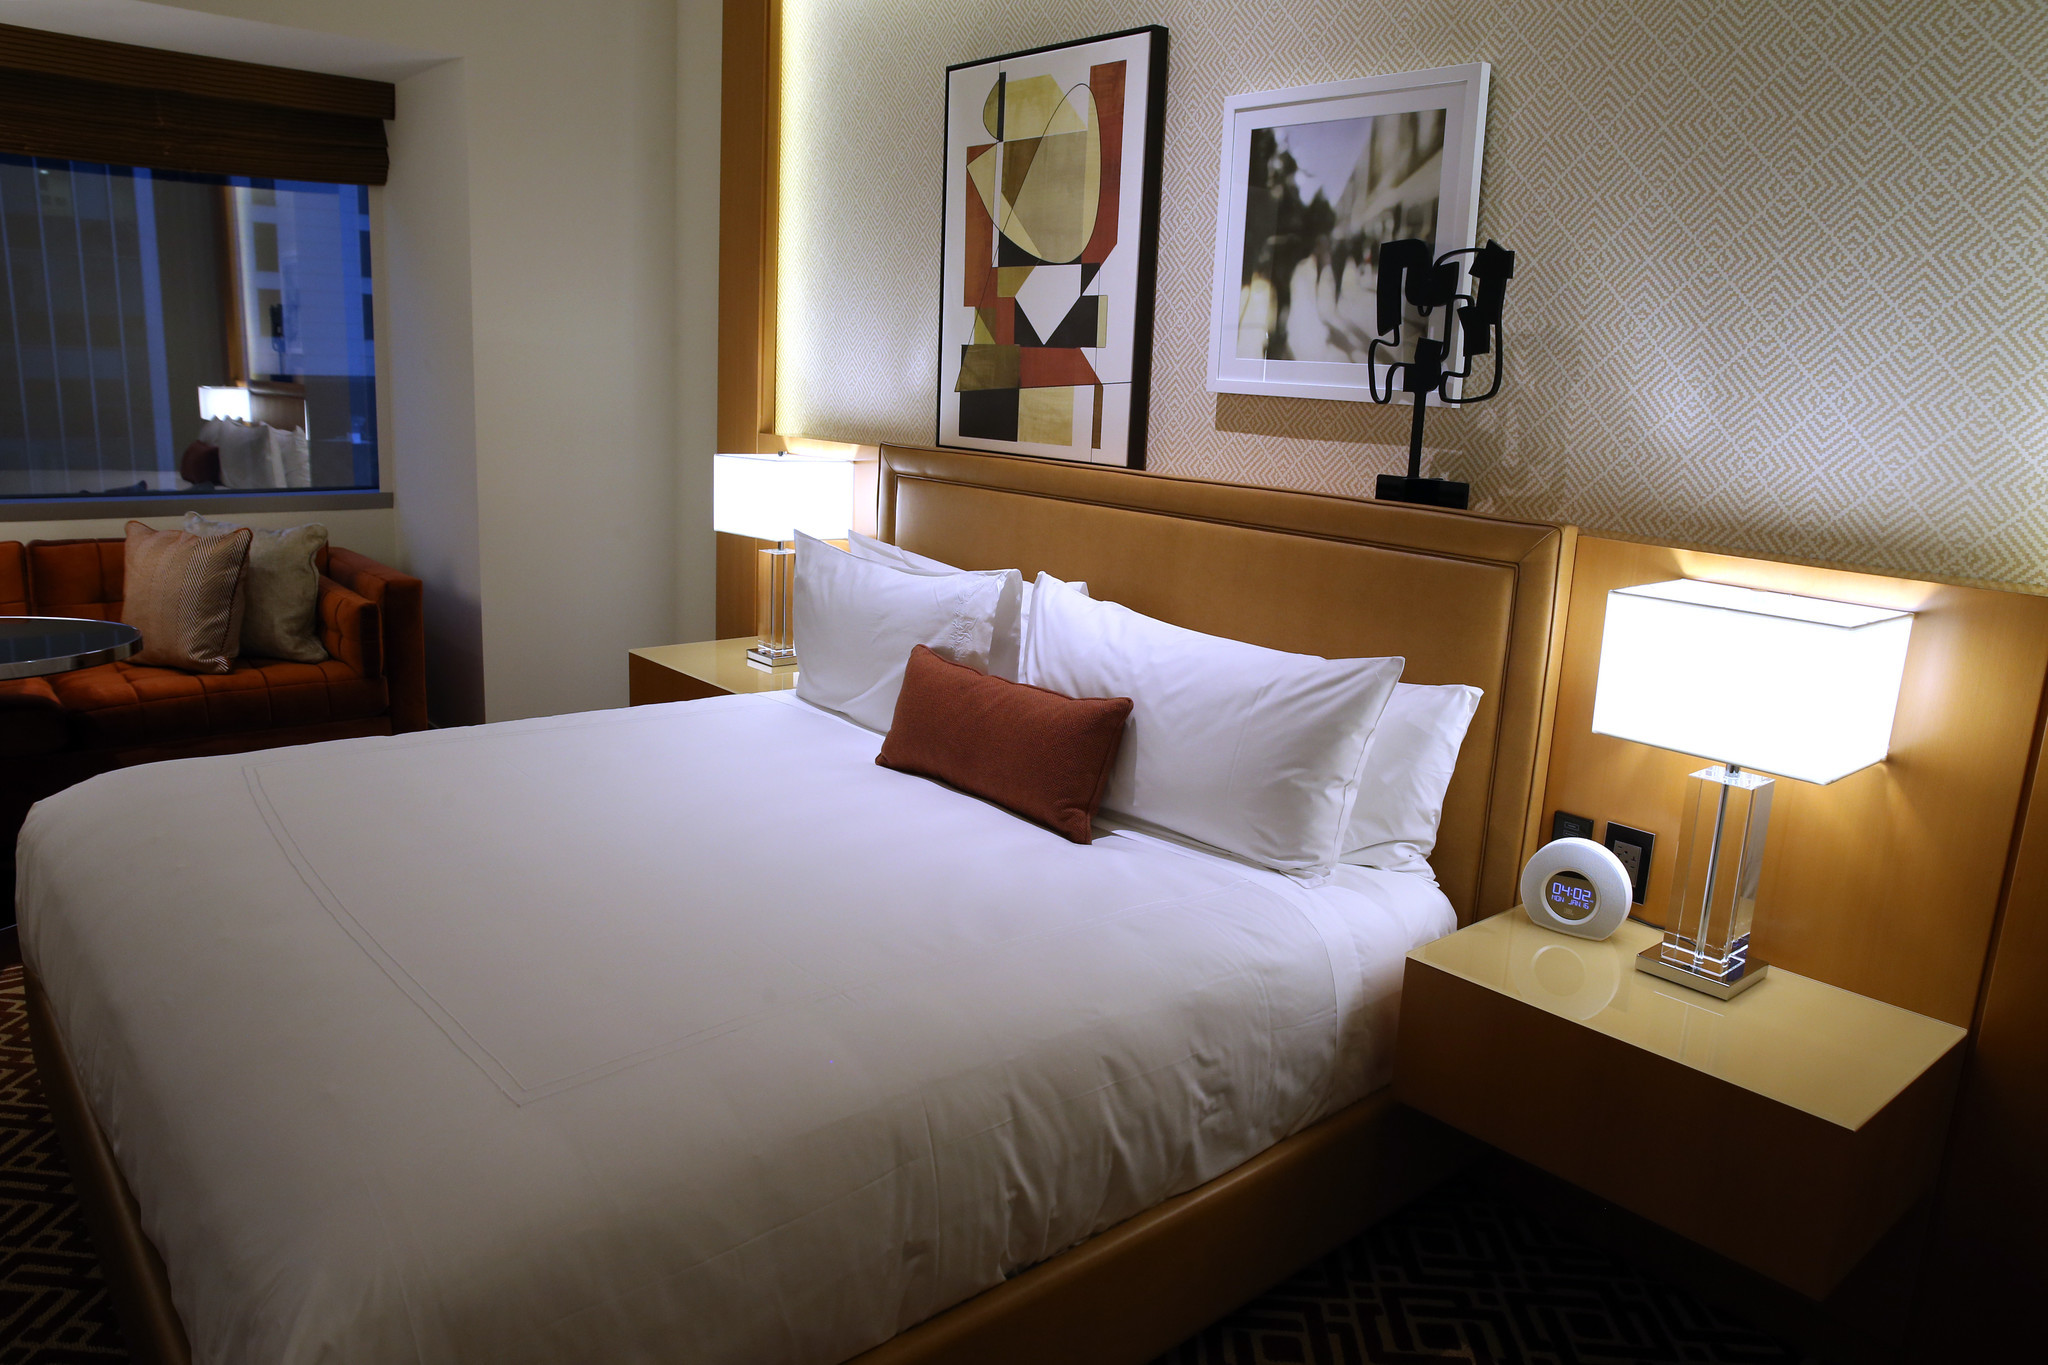 Conrad Chicago hotel offering rooms for 1114 a night